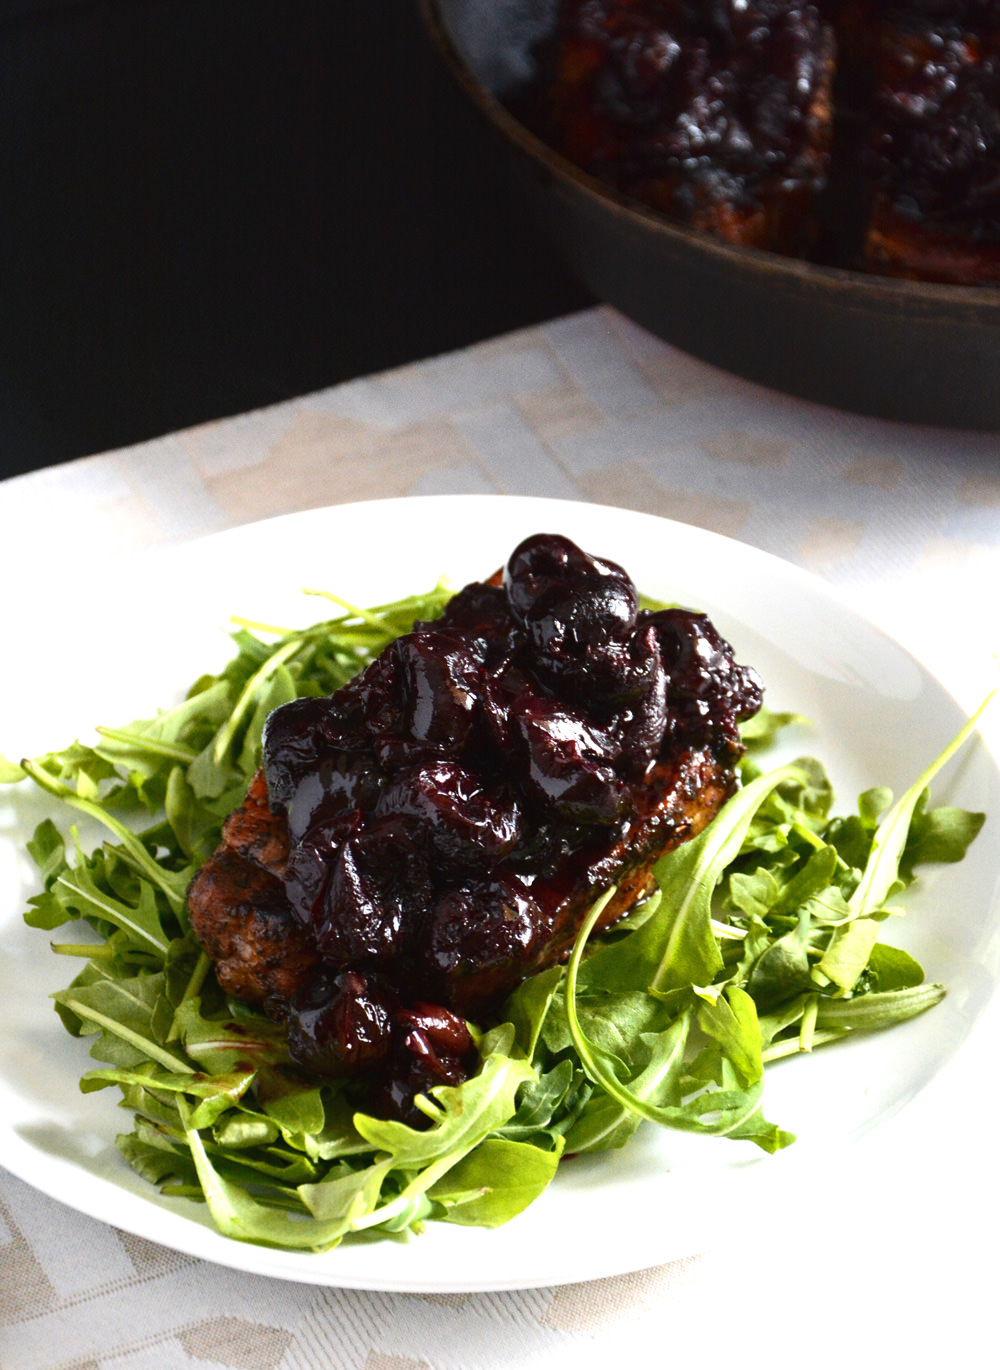 Sage Pork with Cherry Balsamic Glaze | The Housewife in Training Files